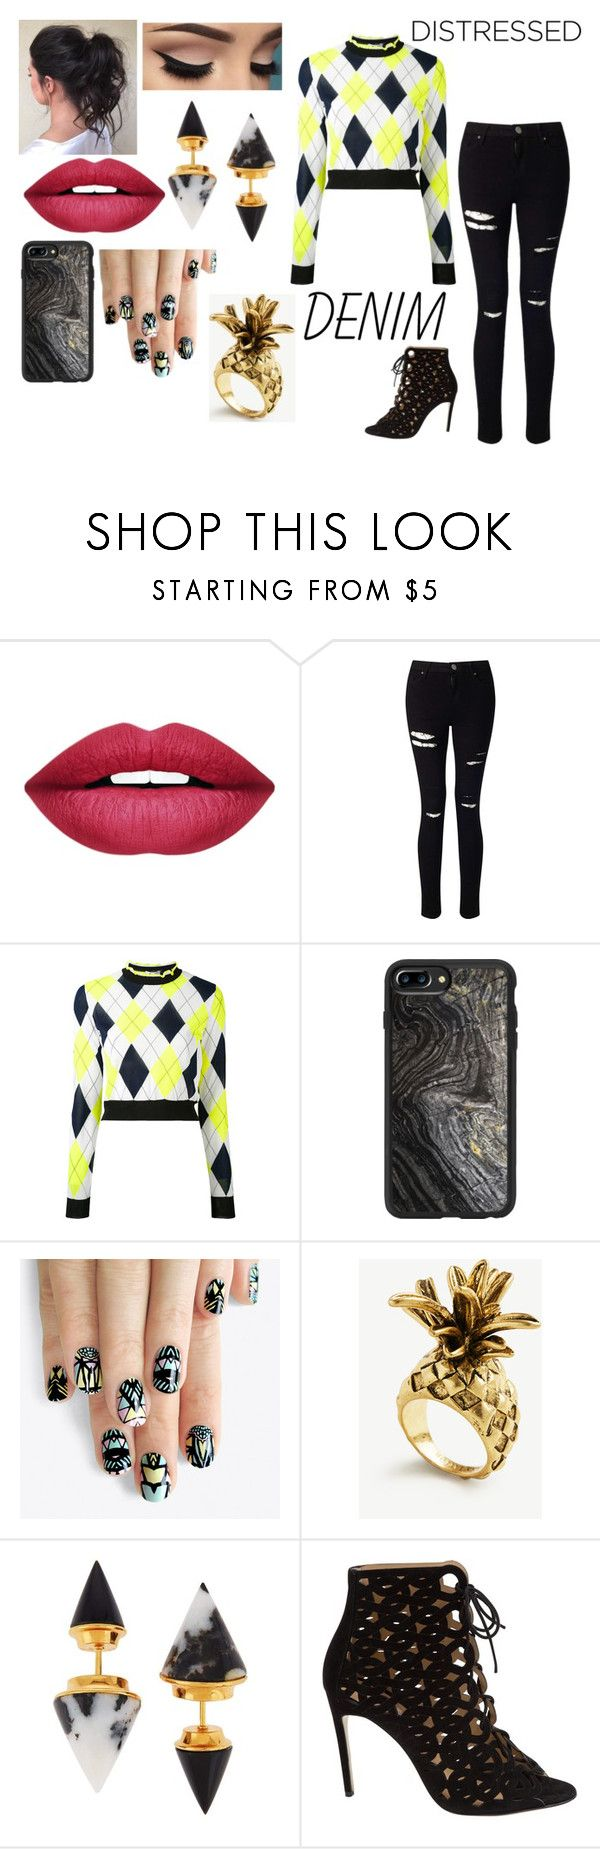 """Distressed Black Denim"" by fashion-1993 ❤ liked on Polyvore featuring Forever 21, Miss Selfridge, MSGM, Casetify, alfa.K, Ann Taylor, Vita Fede, Bionda Castana, denim and distresseddenim"